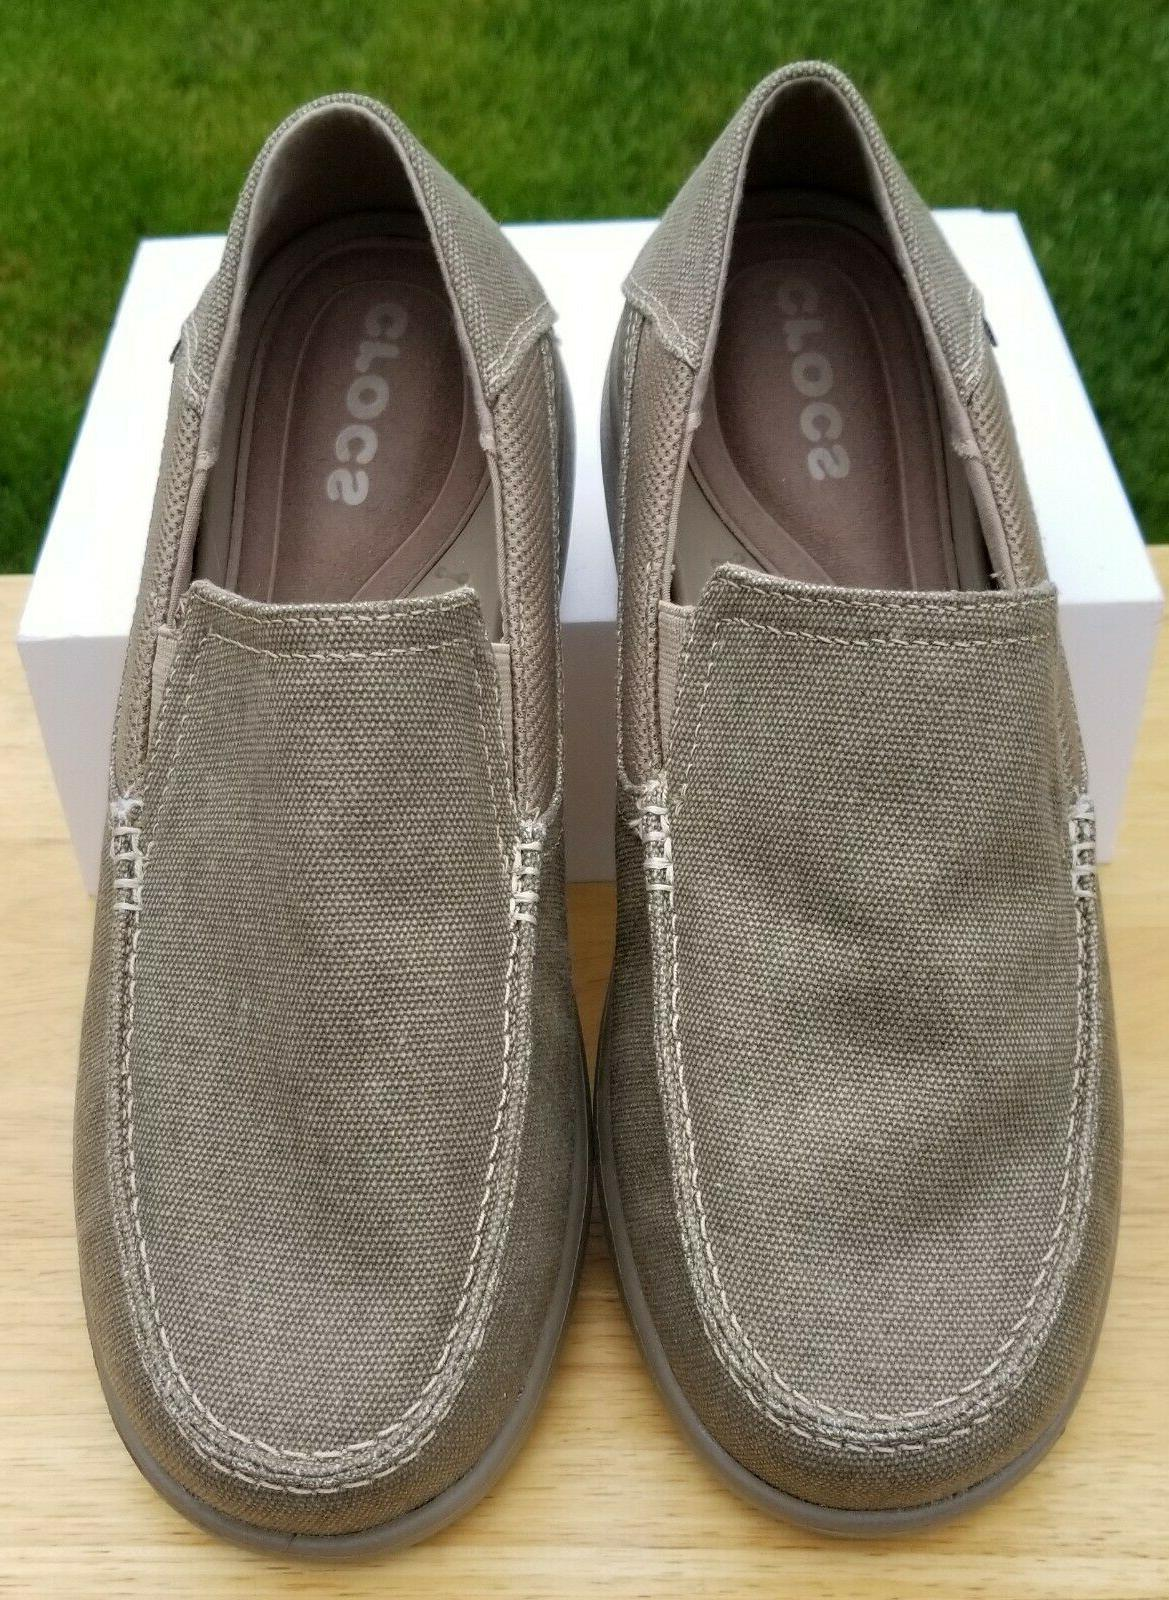 NWOB - CROCS Canvas Loafers, Mens 8